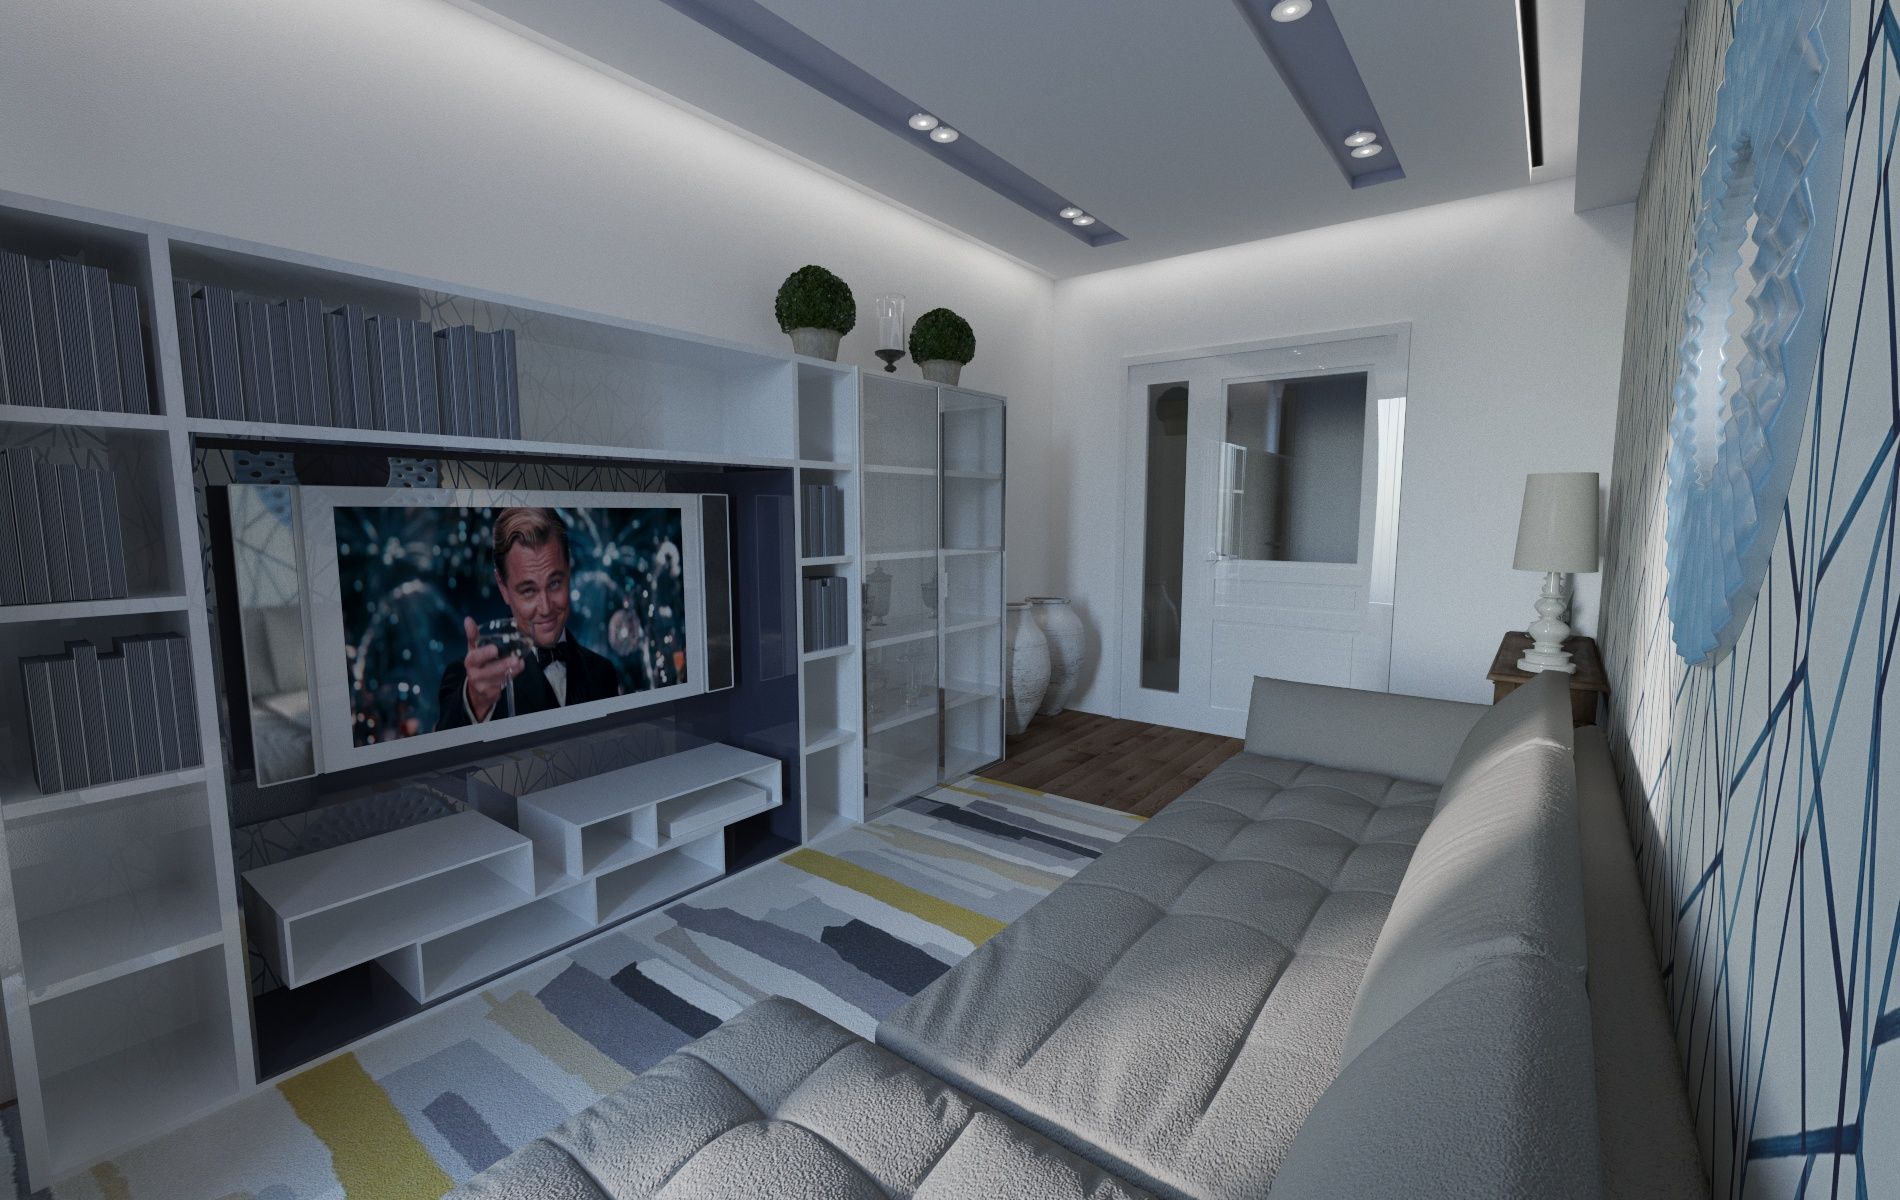 ion turcanu design interior johny (6)